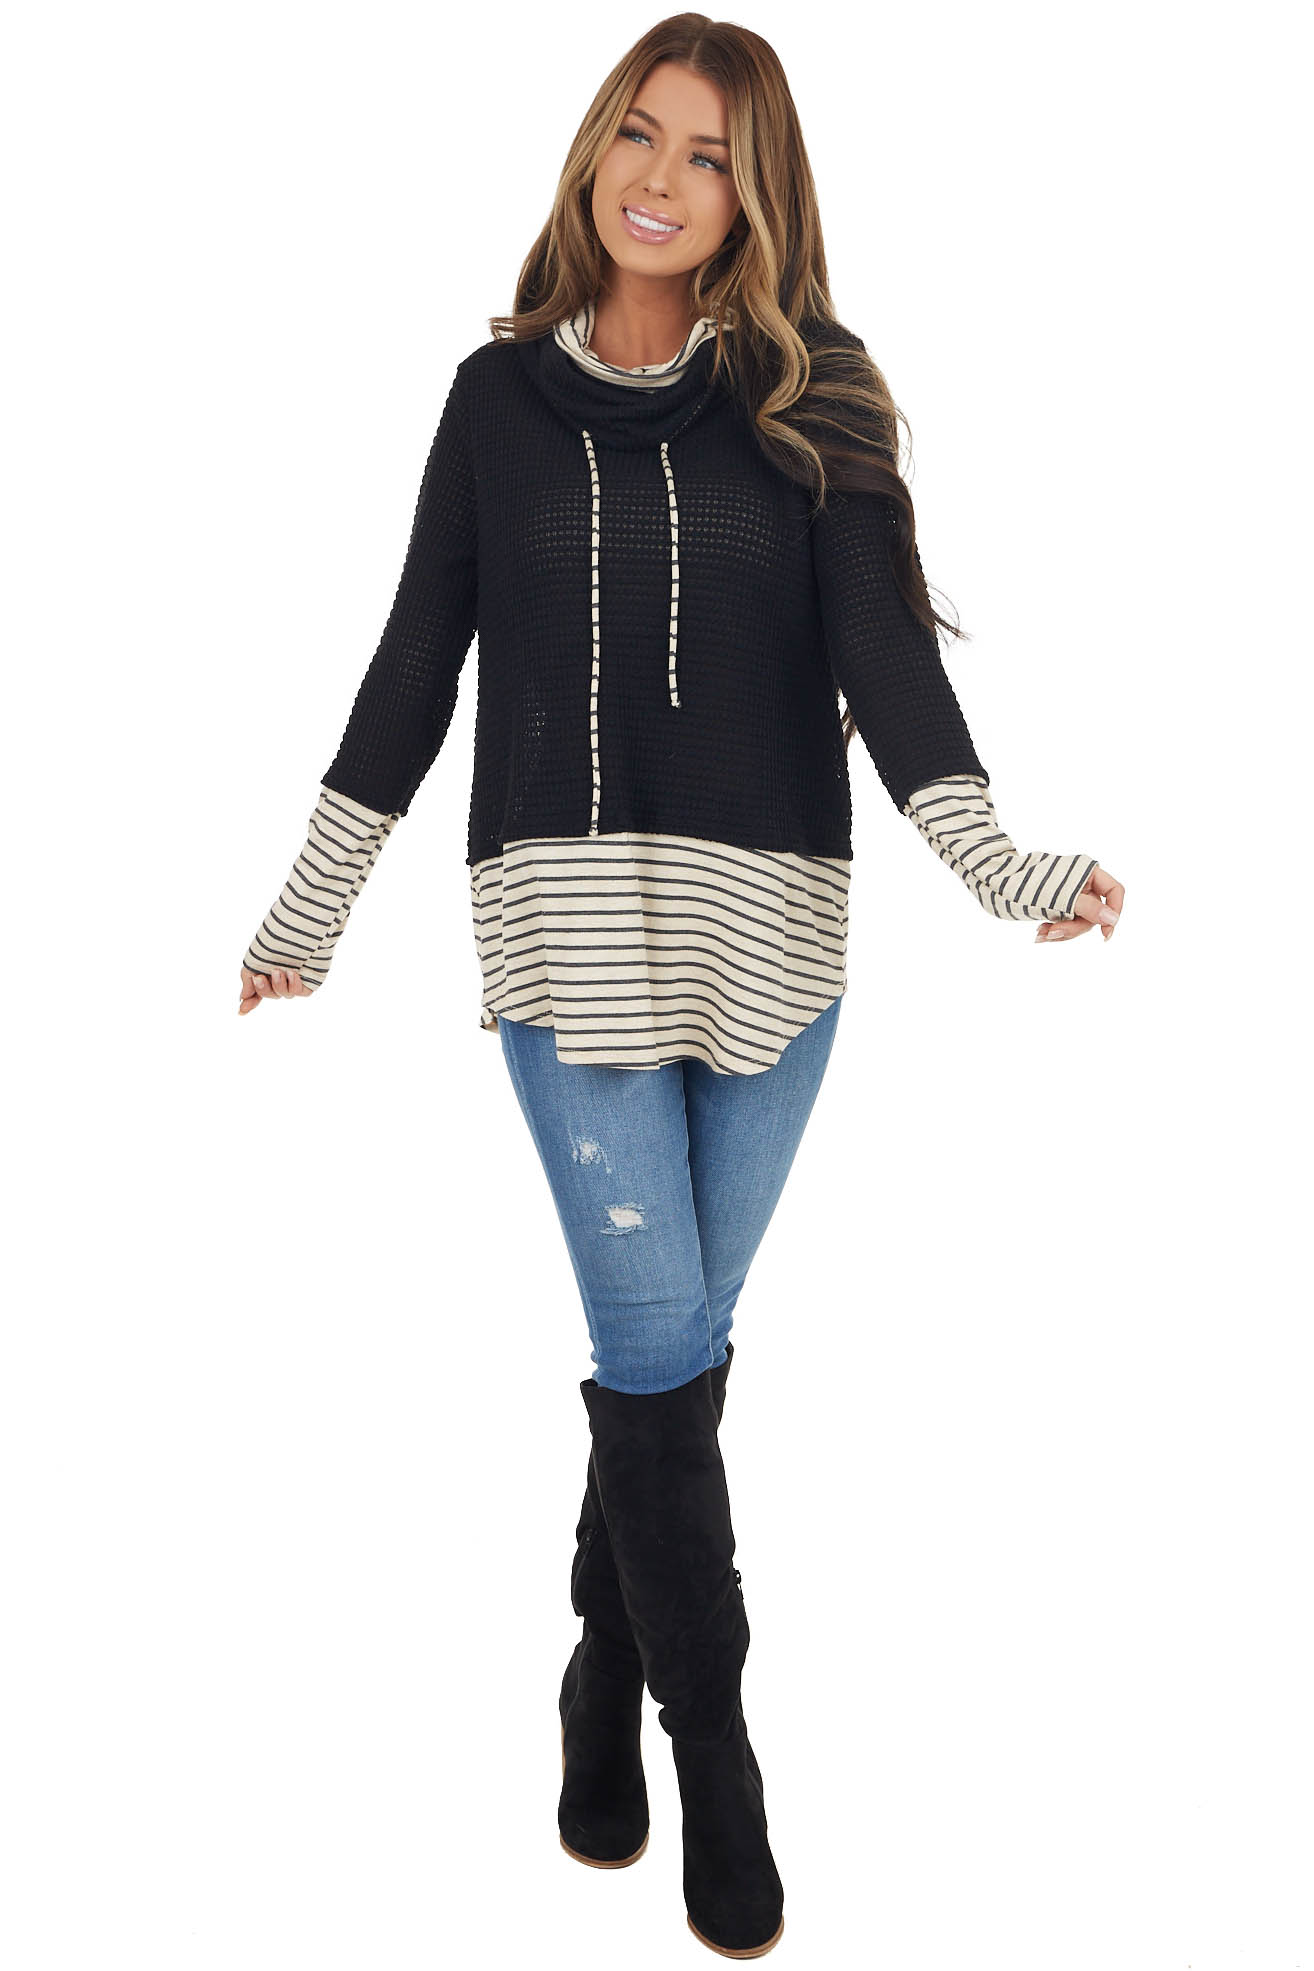 Black Waffle Knit Cowl Neck Top with Cream Striped Details